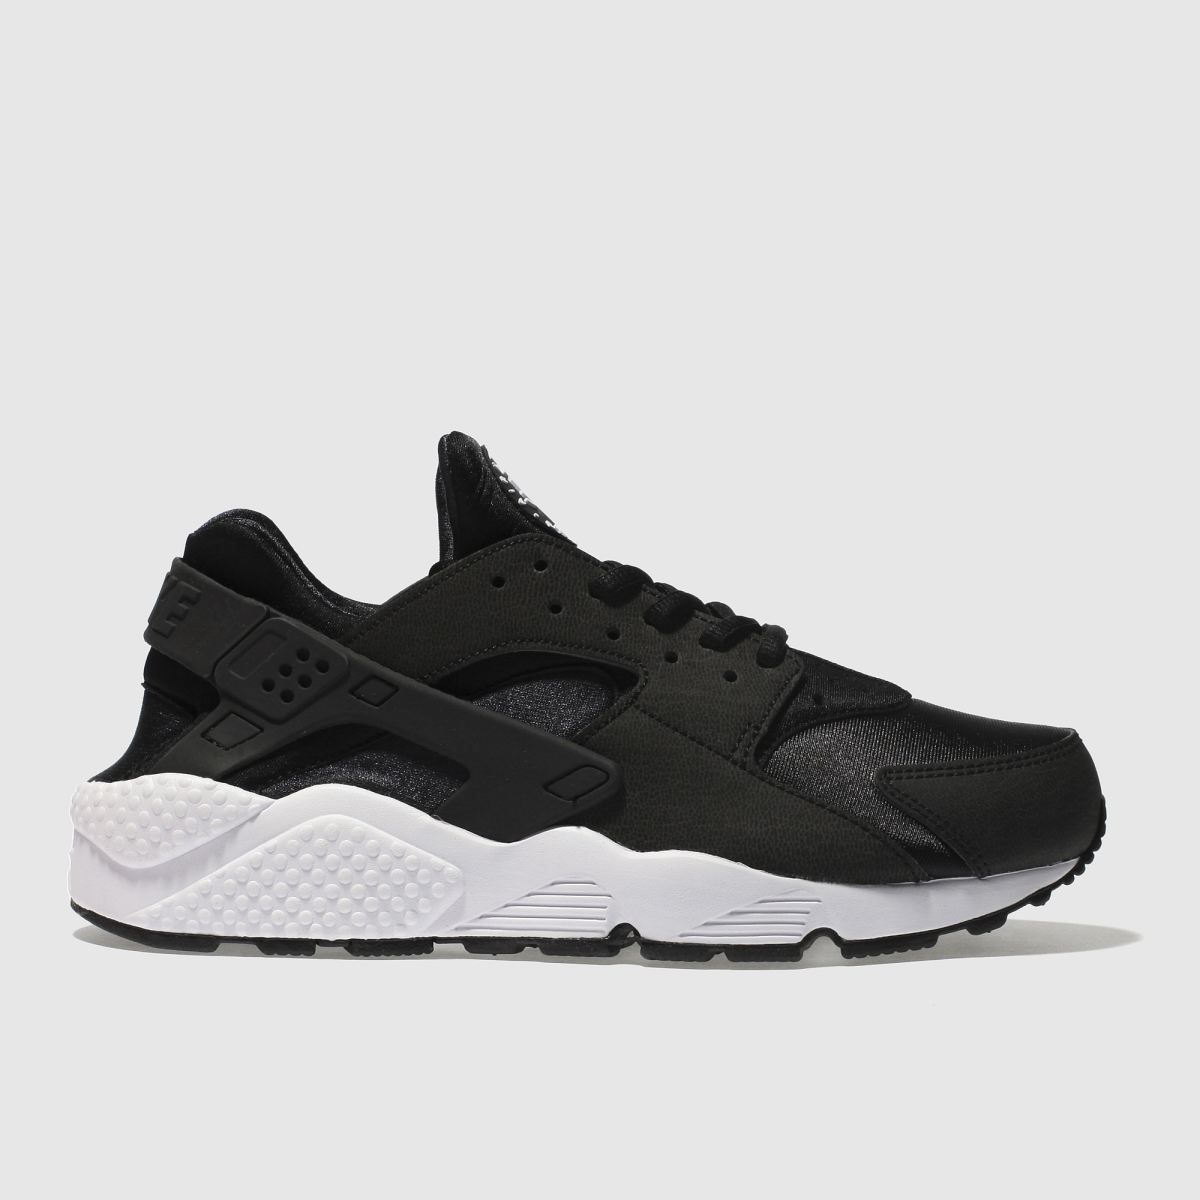 Nike Black & White Huarache Run Trainers